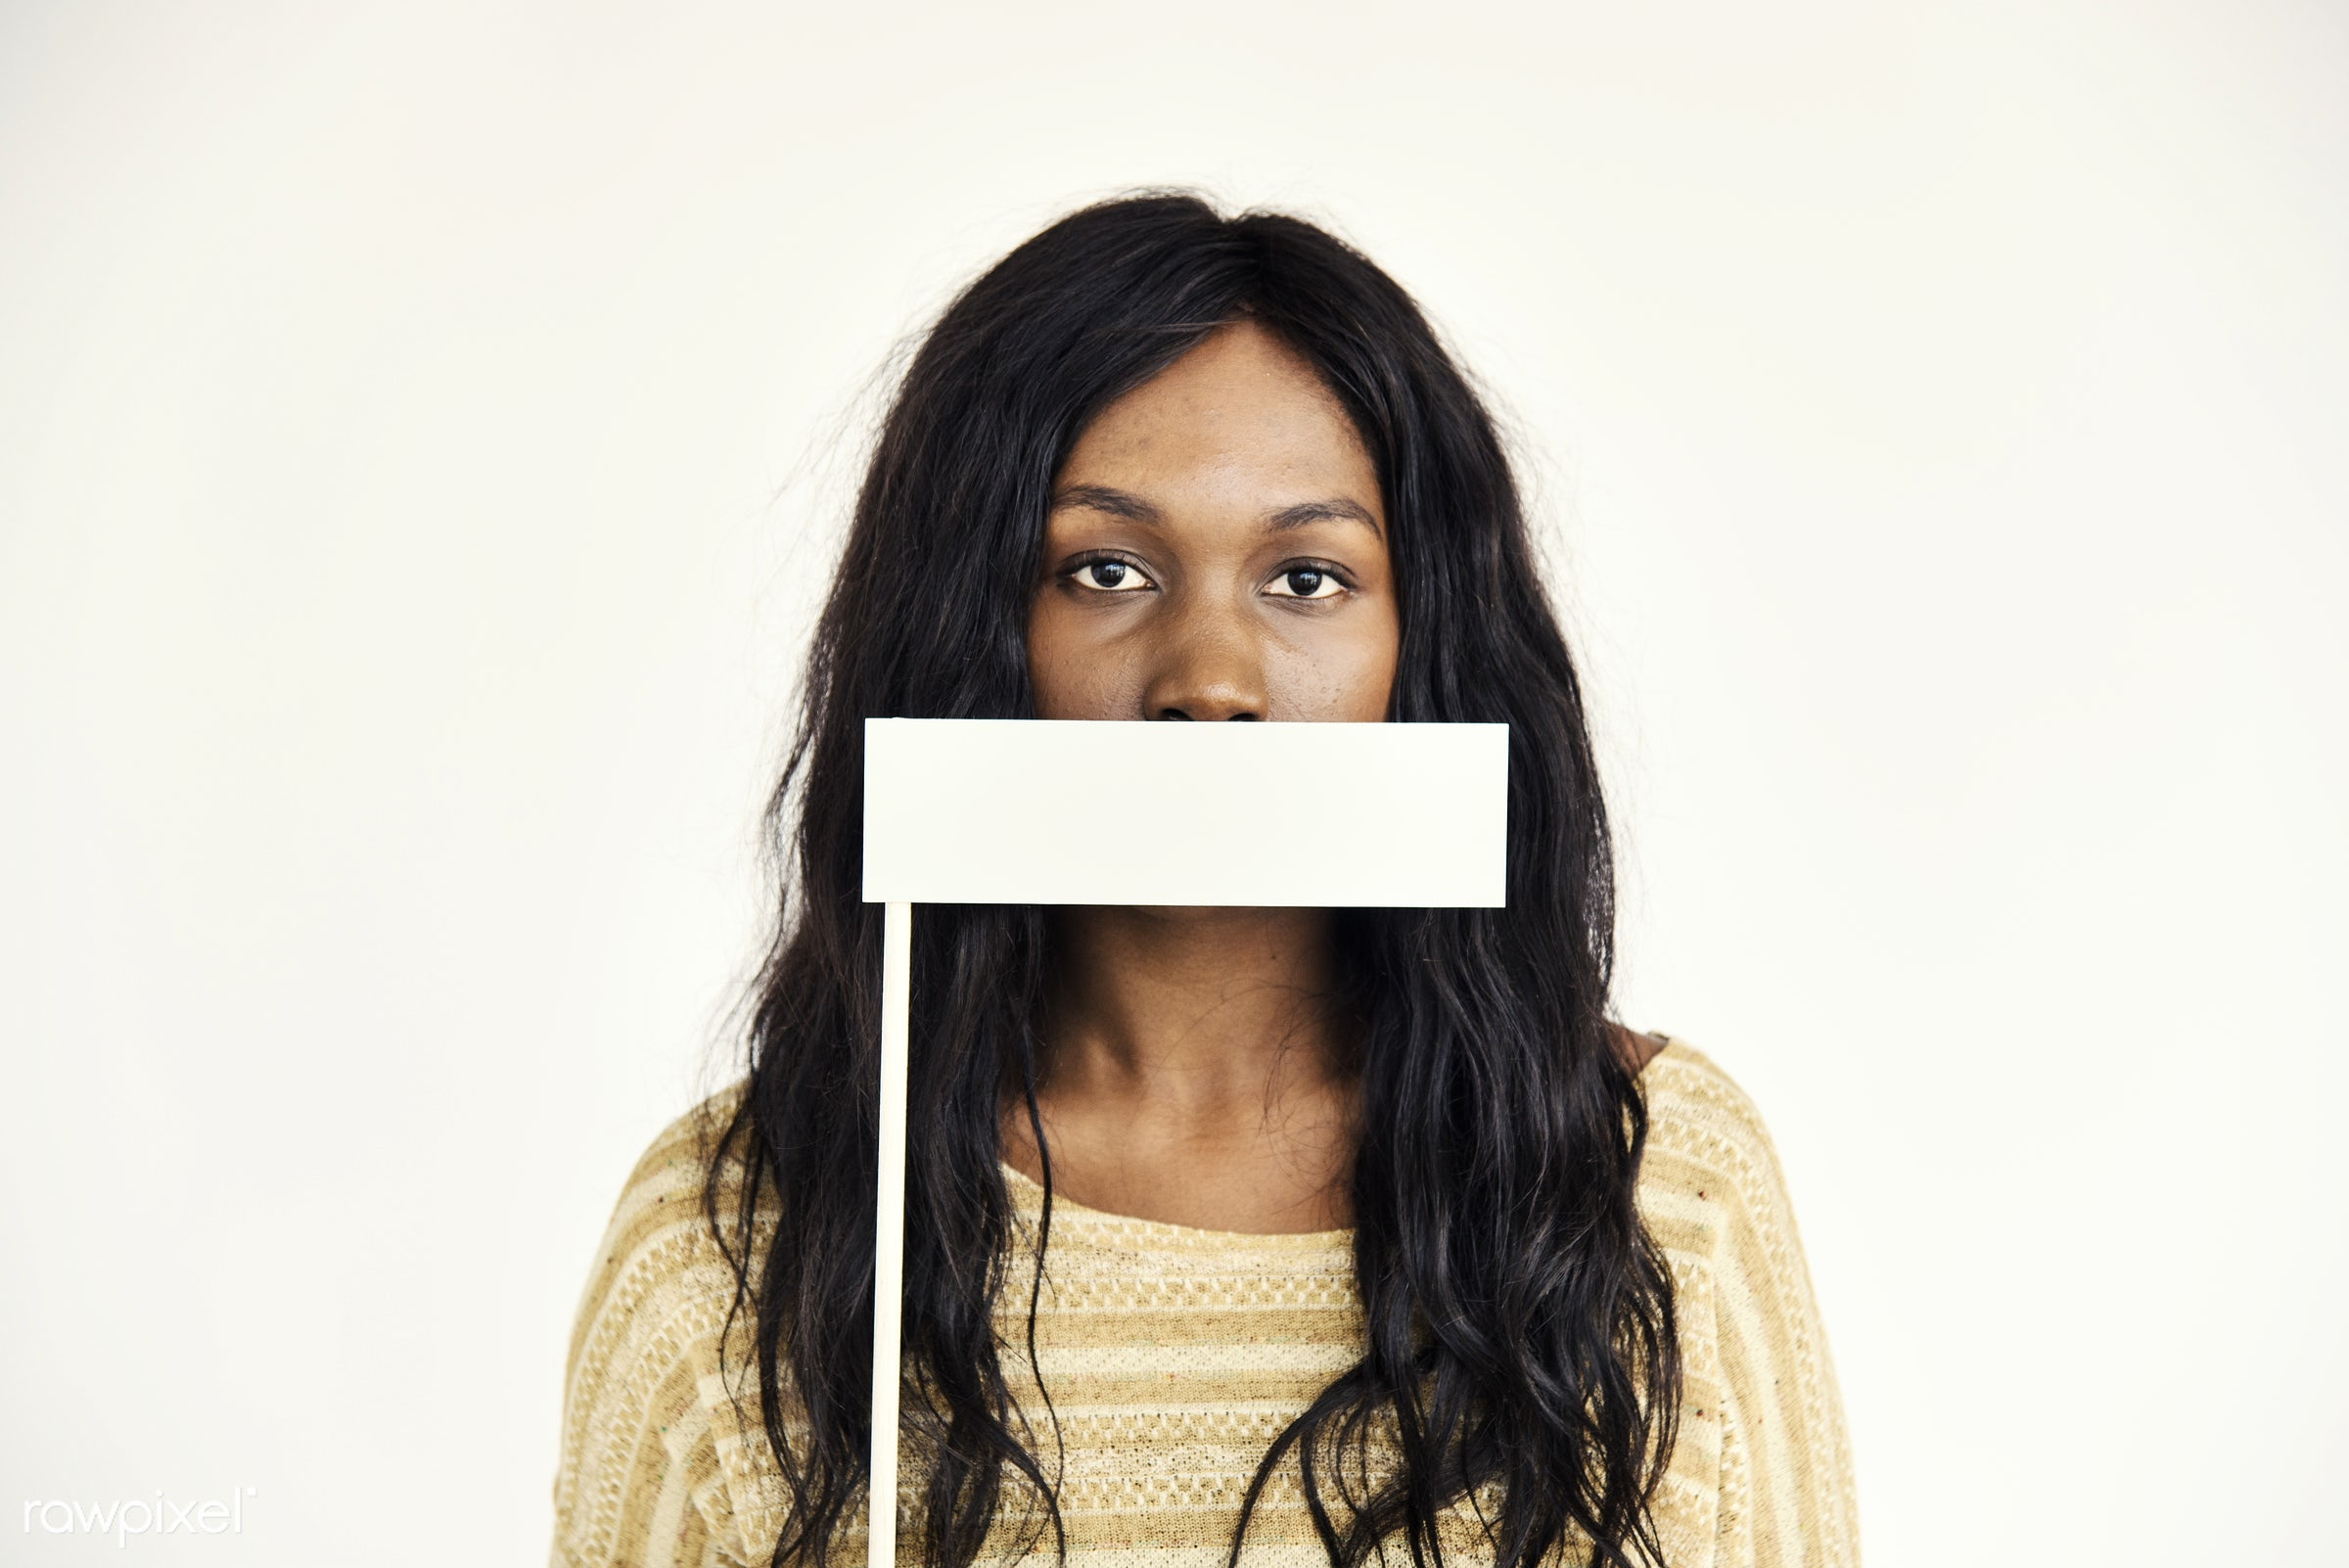 copy space, african, threat, isolated on white, covering, eligible, mouth covered, woman, alone, censor, forced, covered,...